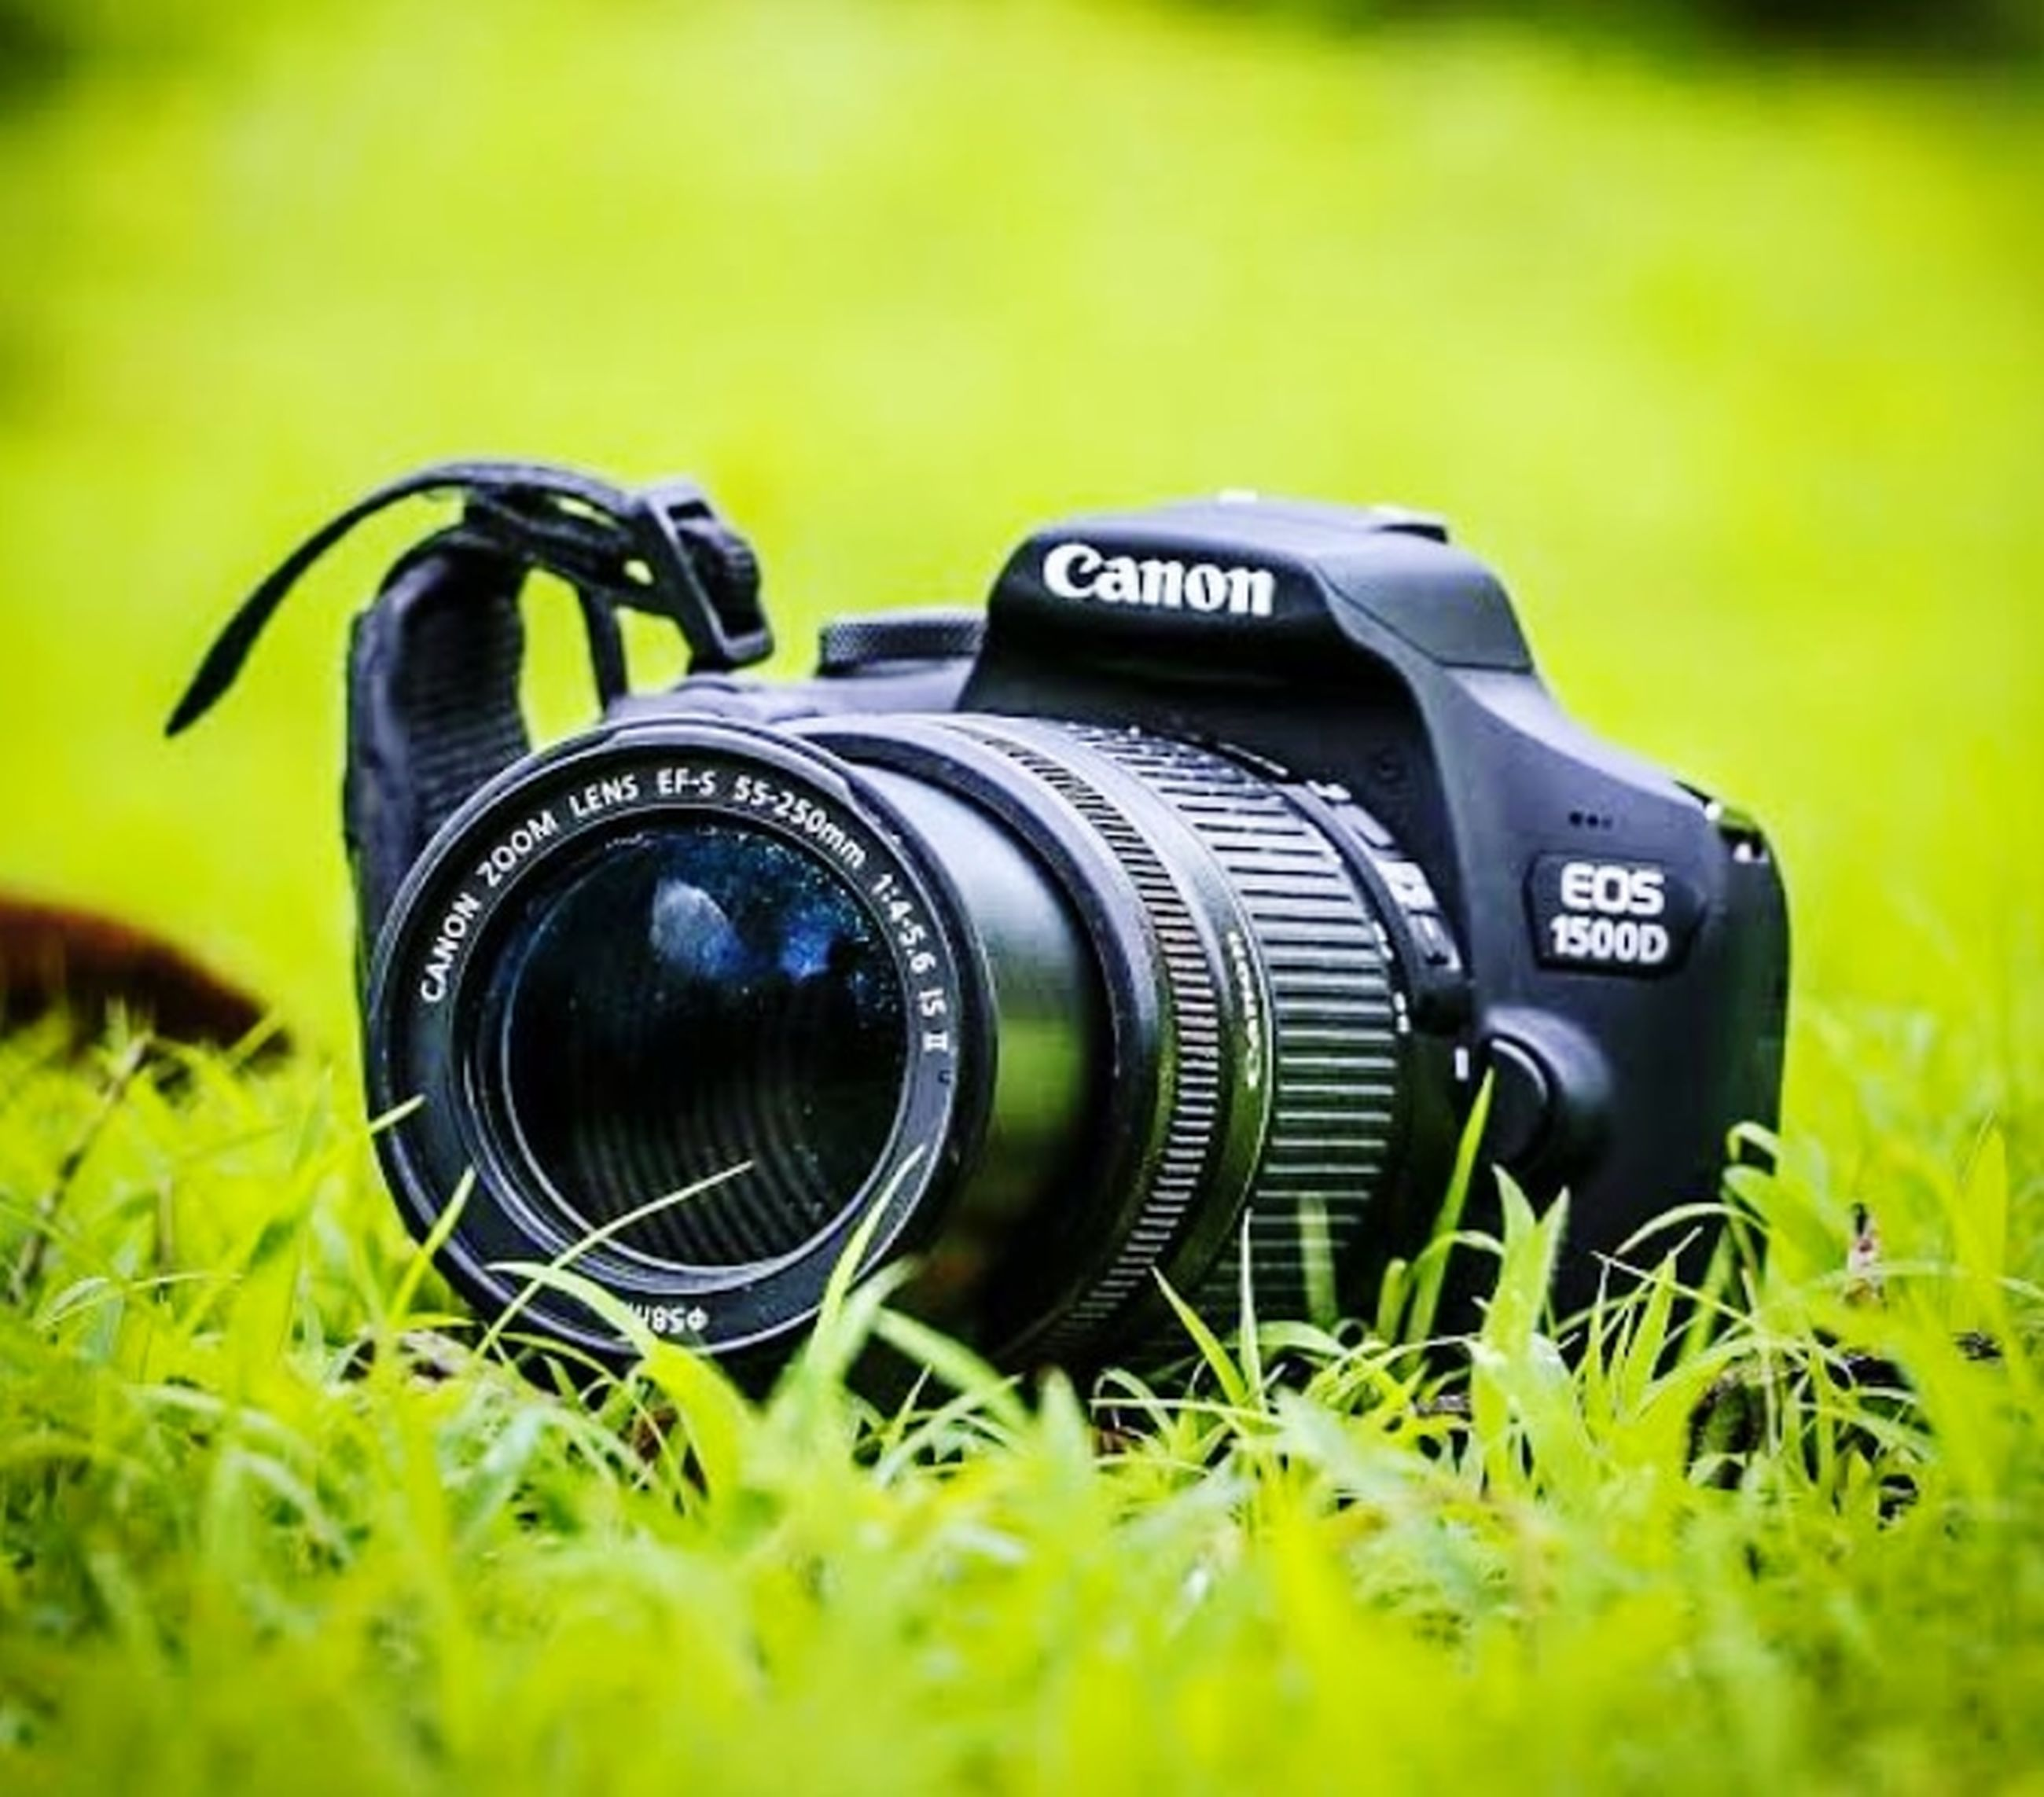 green, camera, grass, technology, lens - optical instrument, photographic equipment, plant, digital slr, yellow, activity, photographing, lens - eye, close-up, camera lens, retro styled, selective focus, lawn, field, no people, nature, day, single object, outdoors, black, land